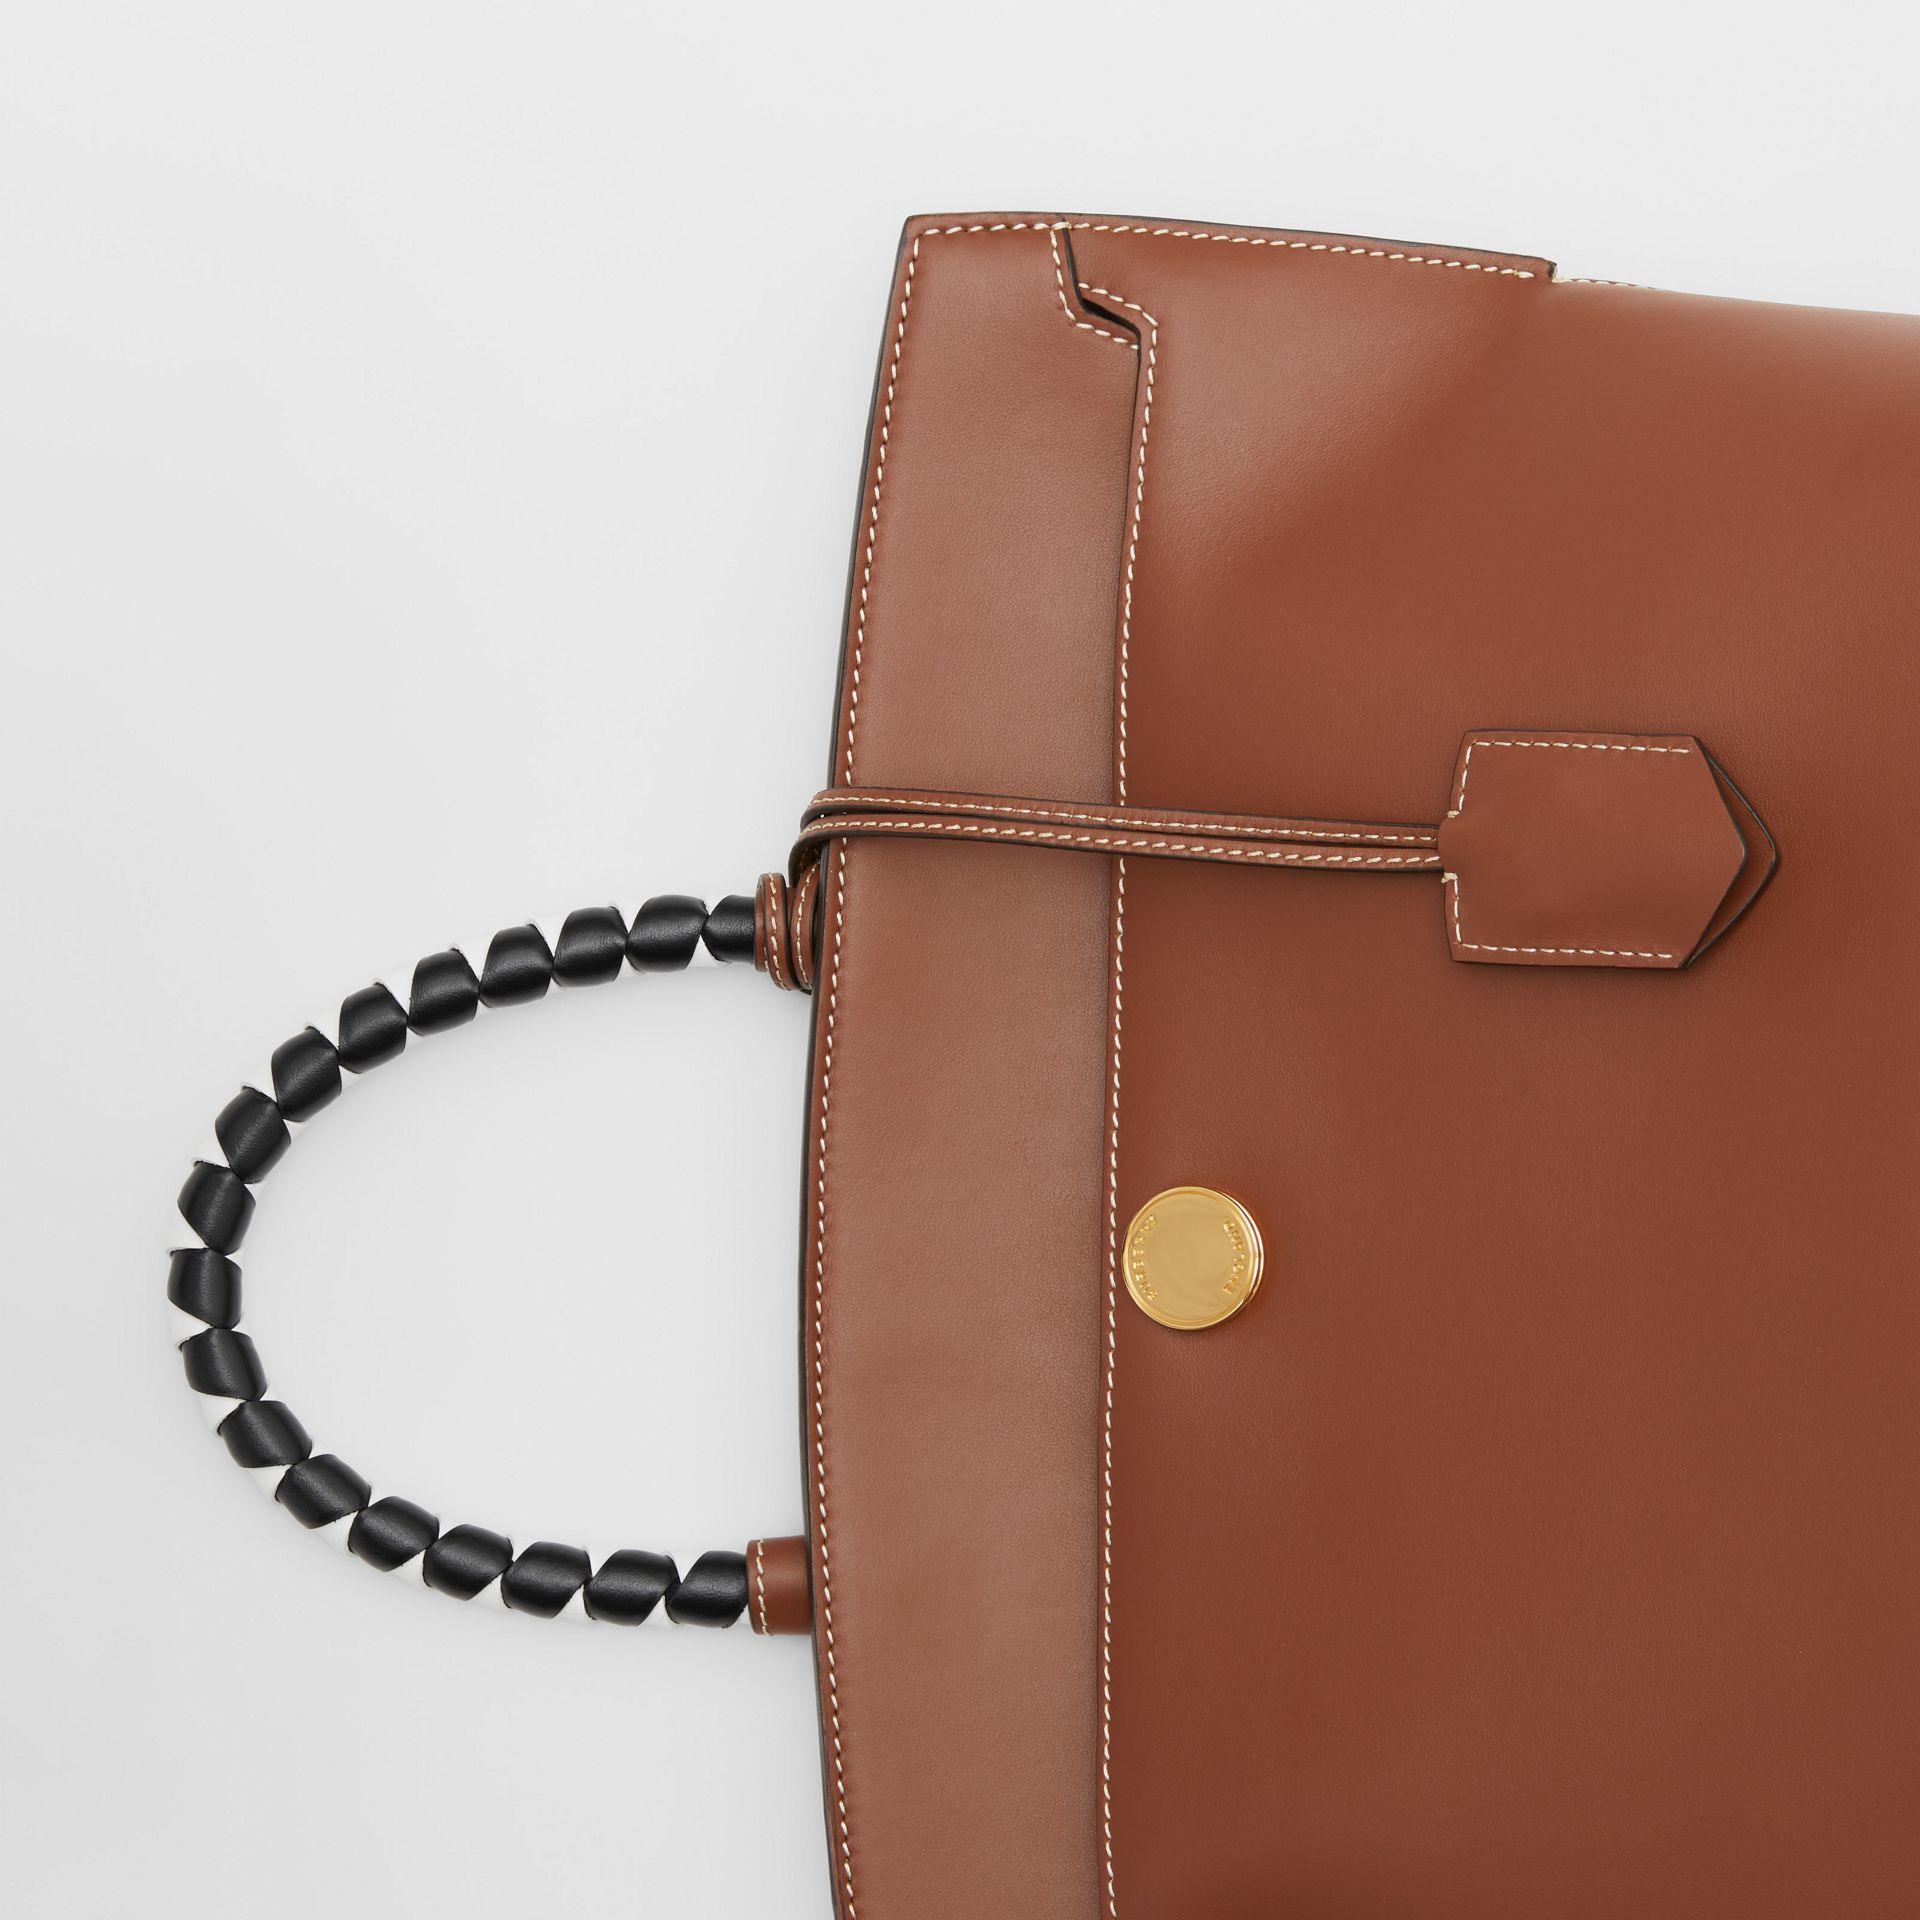 Small Leather Society Top Handle Bag in Tan - Women | Burberry - gallery image 1